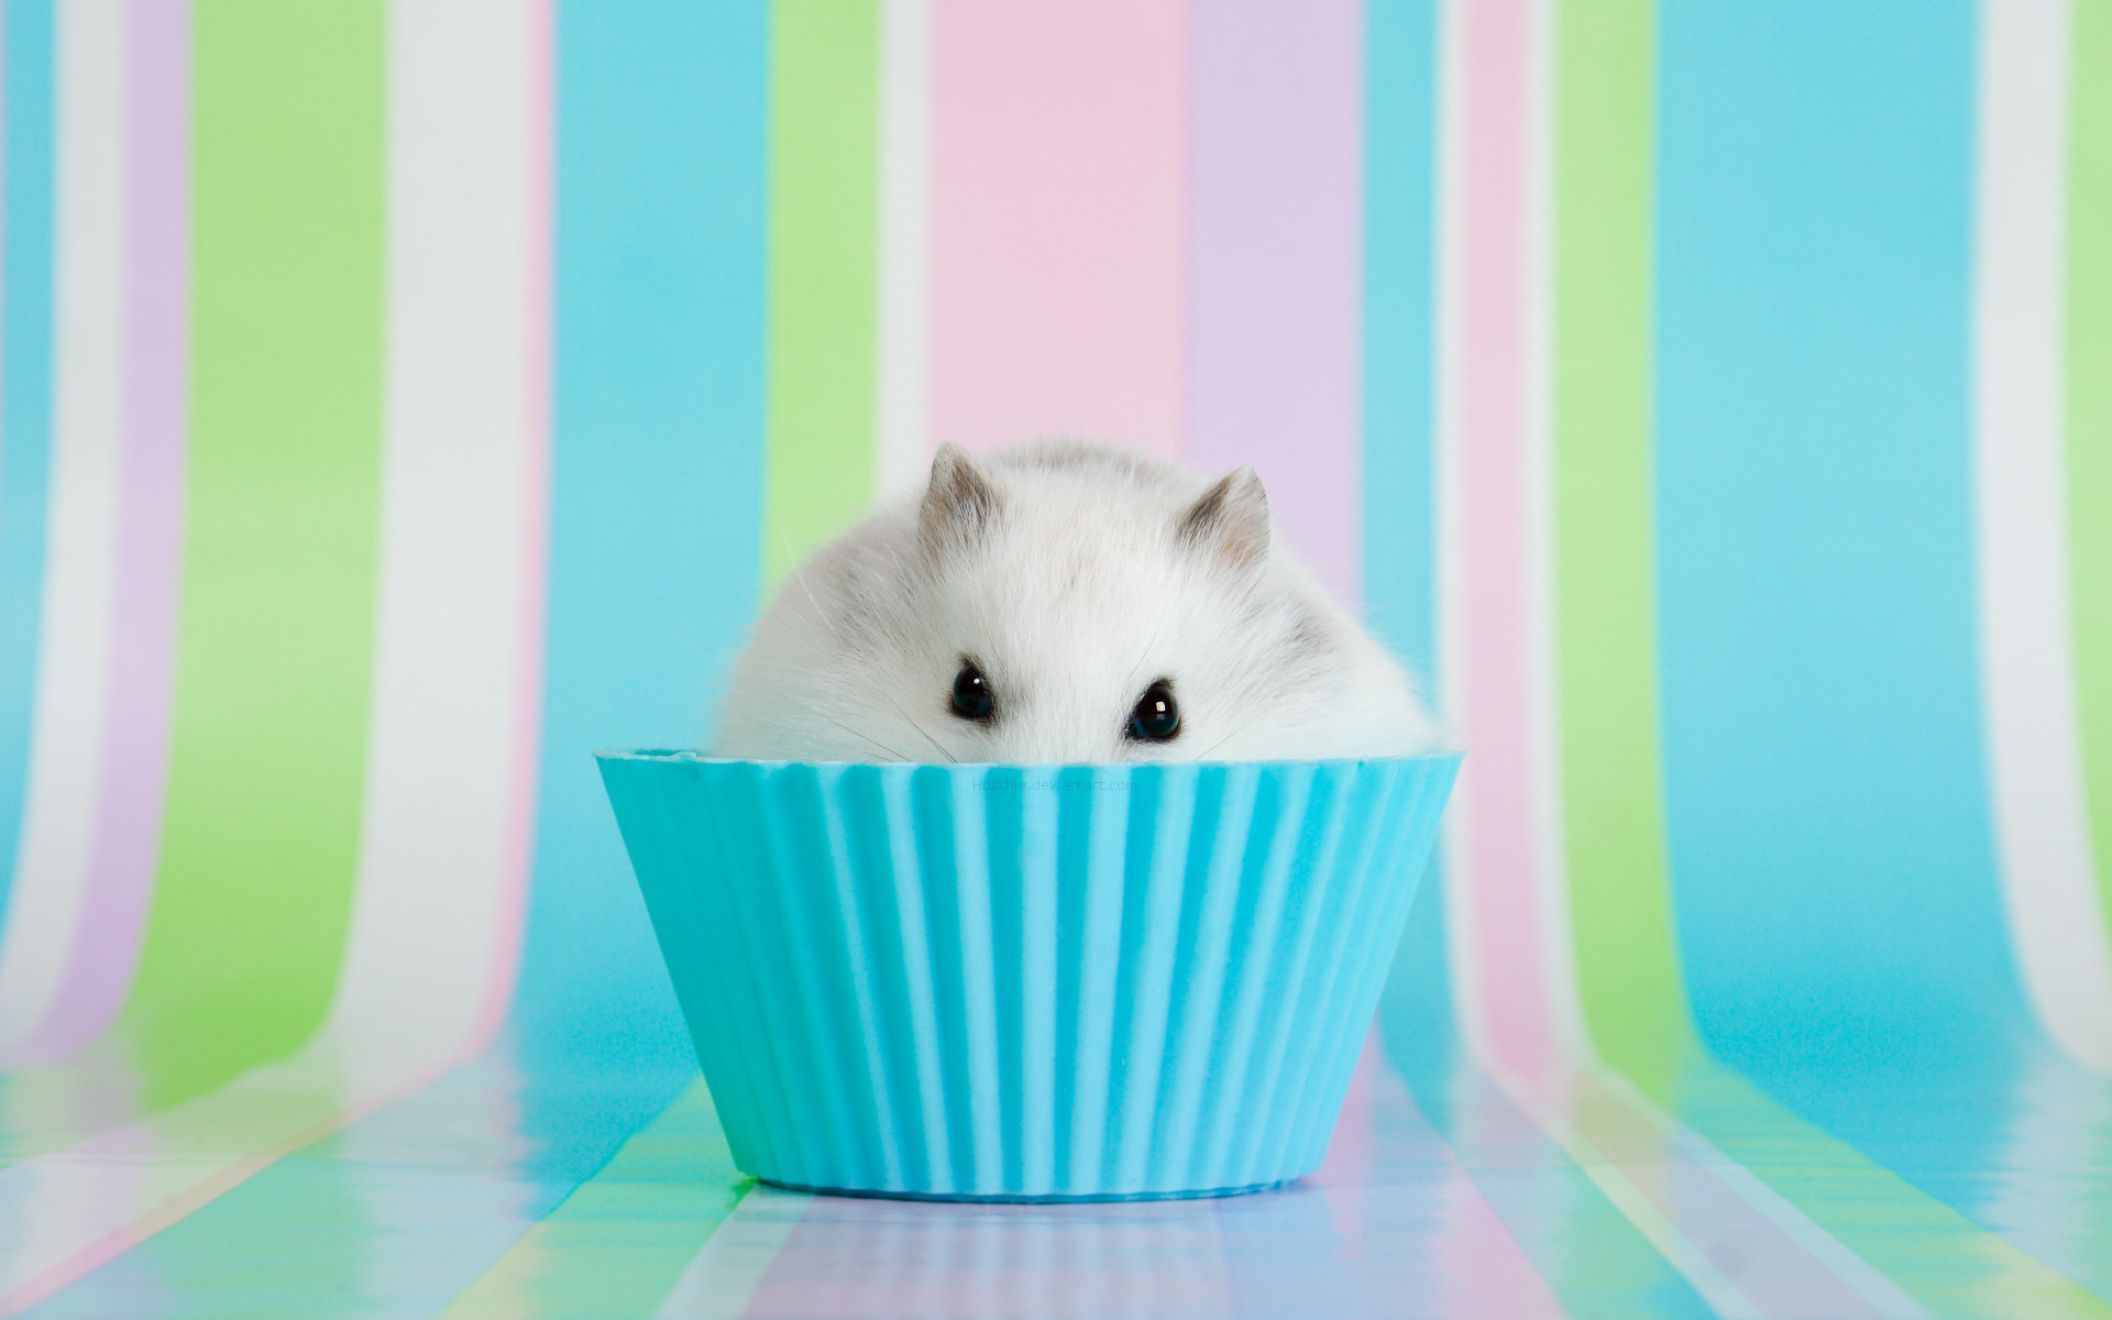 Download free HD Hamster 1920×1200 Wallpaper, image